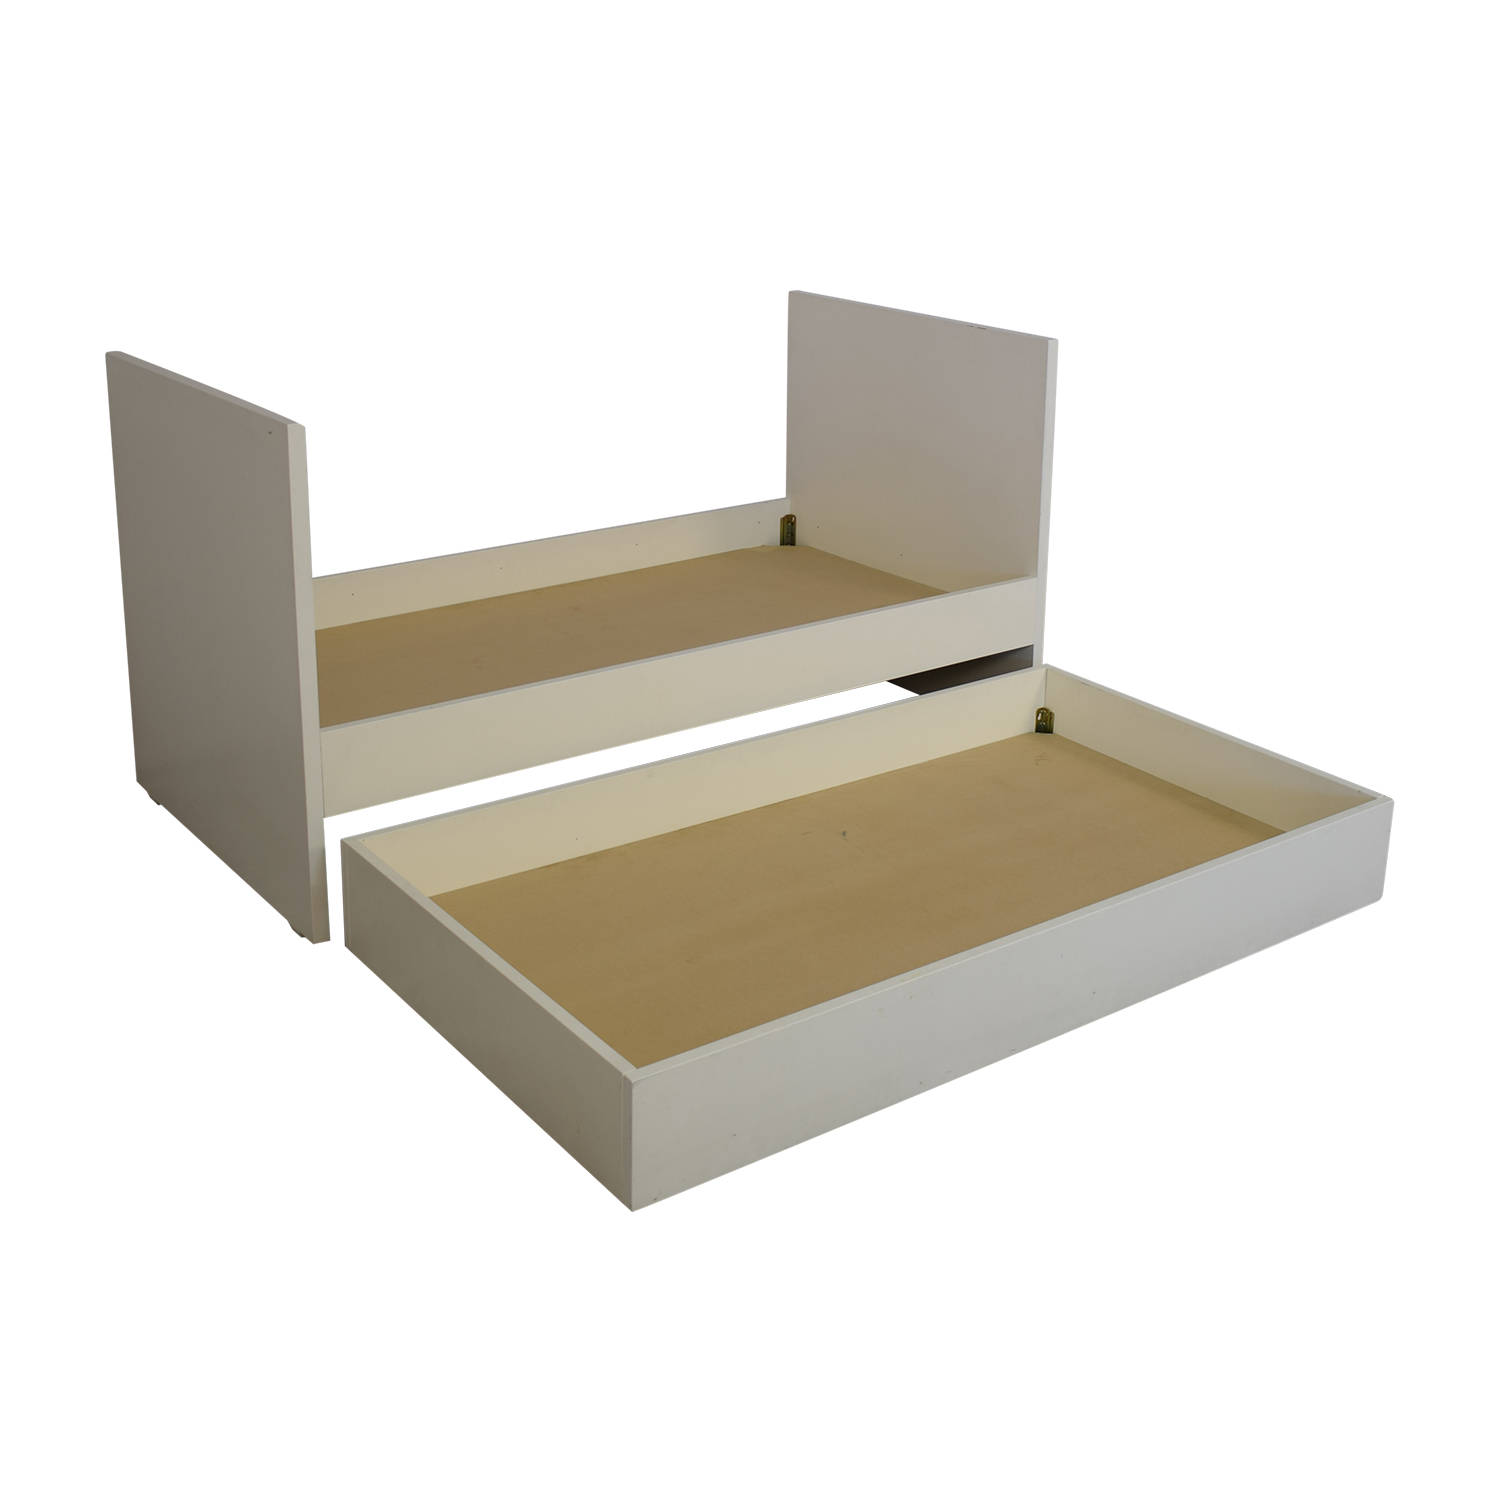 shop Room & Board Twin Child's Bed with Trundle Room & Board Beds